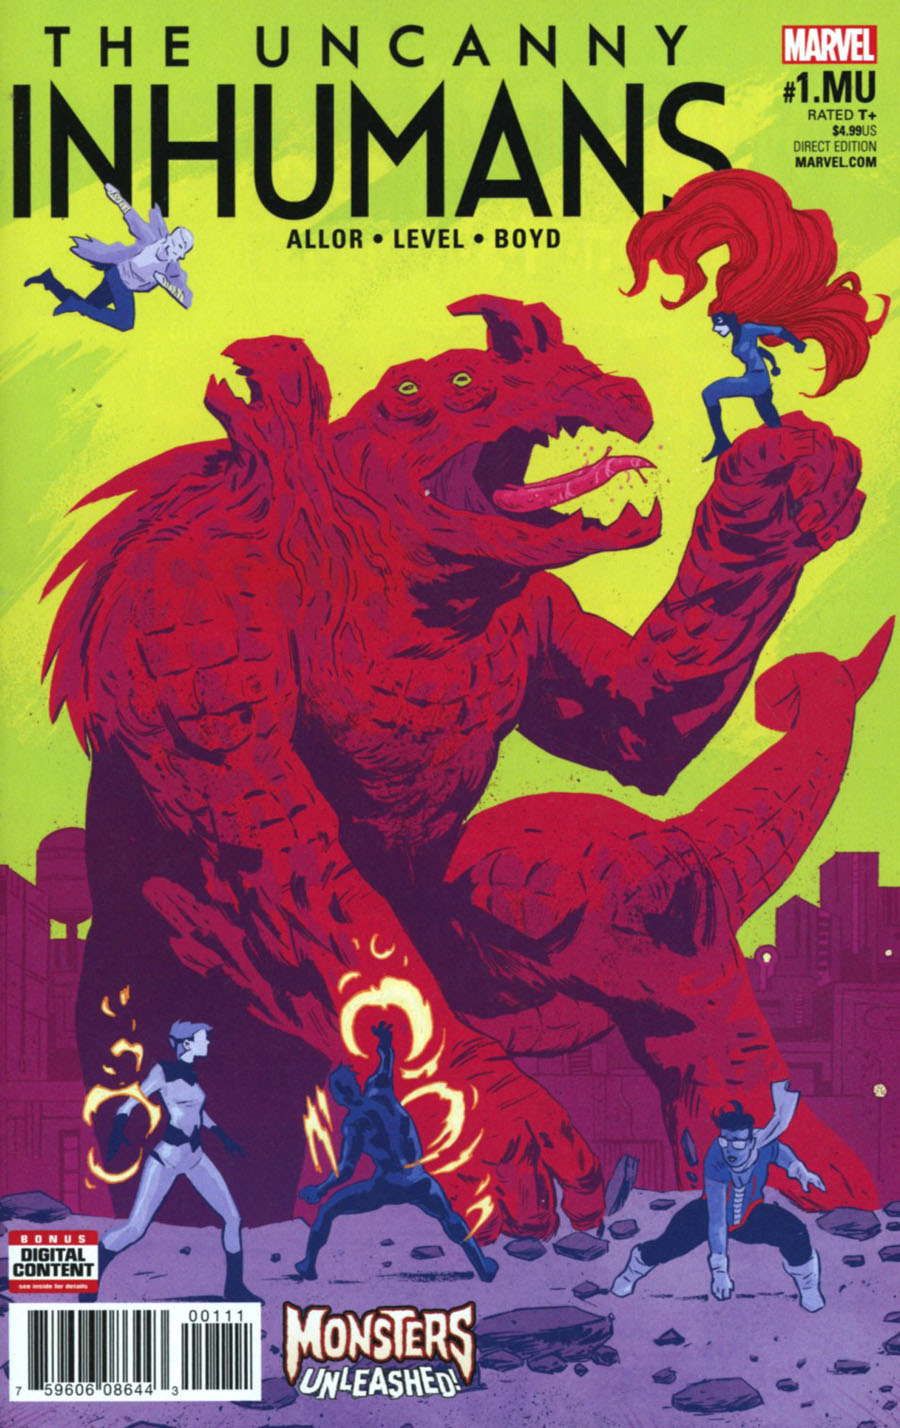 Uncanny Inhumans #1.MU Cover A Regular Michael Walsh Cover (Monsters Unleashed Tie-In)